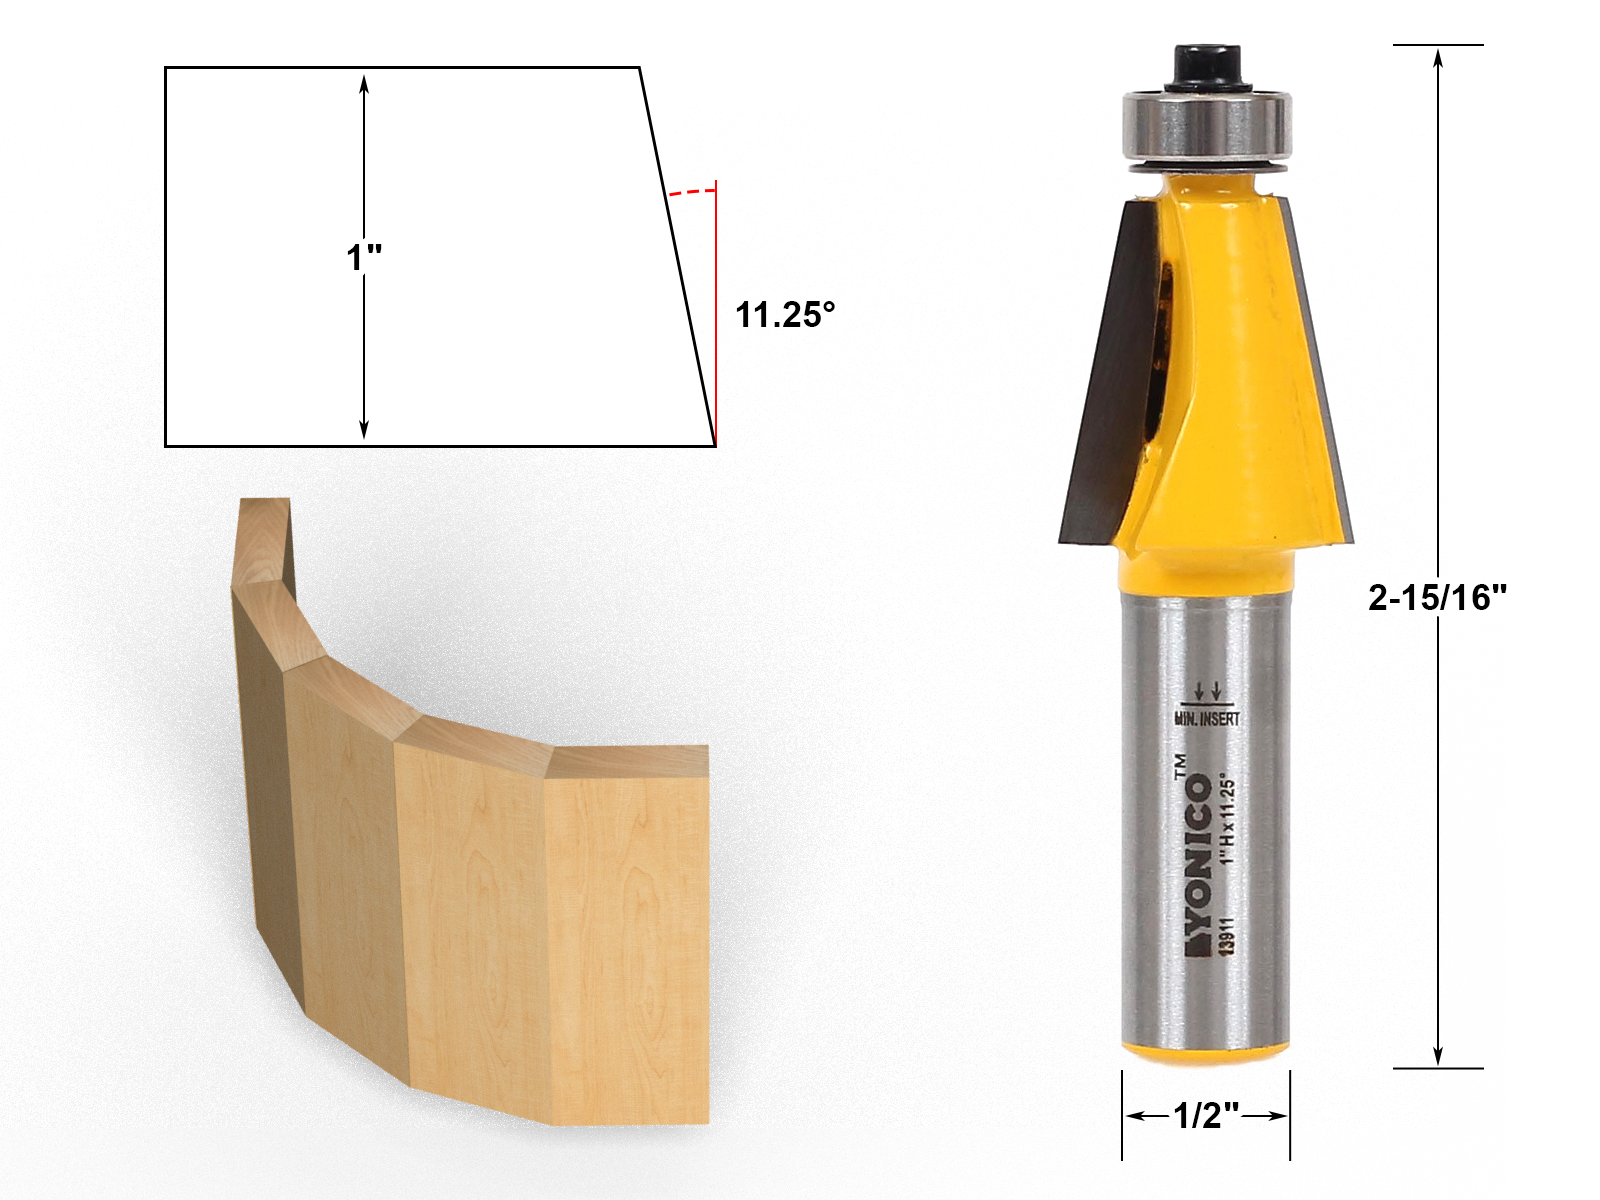 1 NEW  Yonico 22.5° Chamfer Carbide Tip Router Bit 1//2 Shank Bearing y4